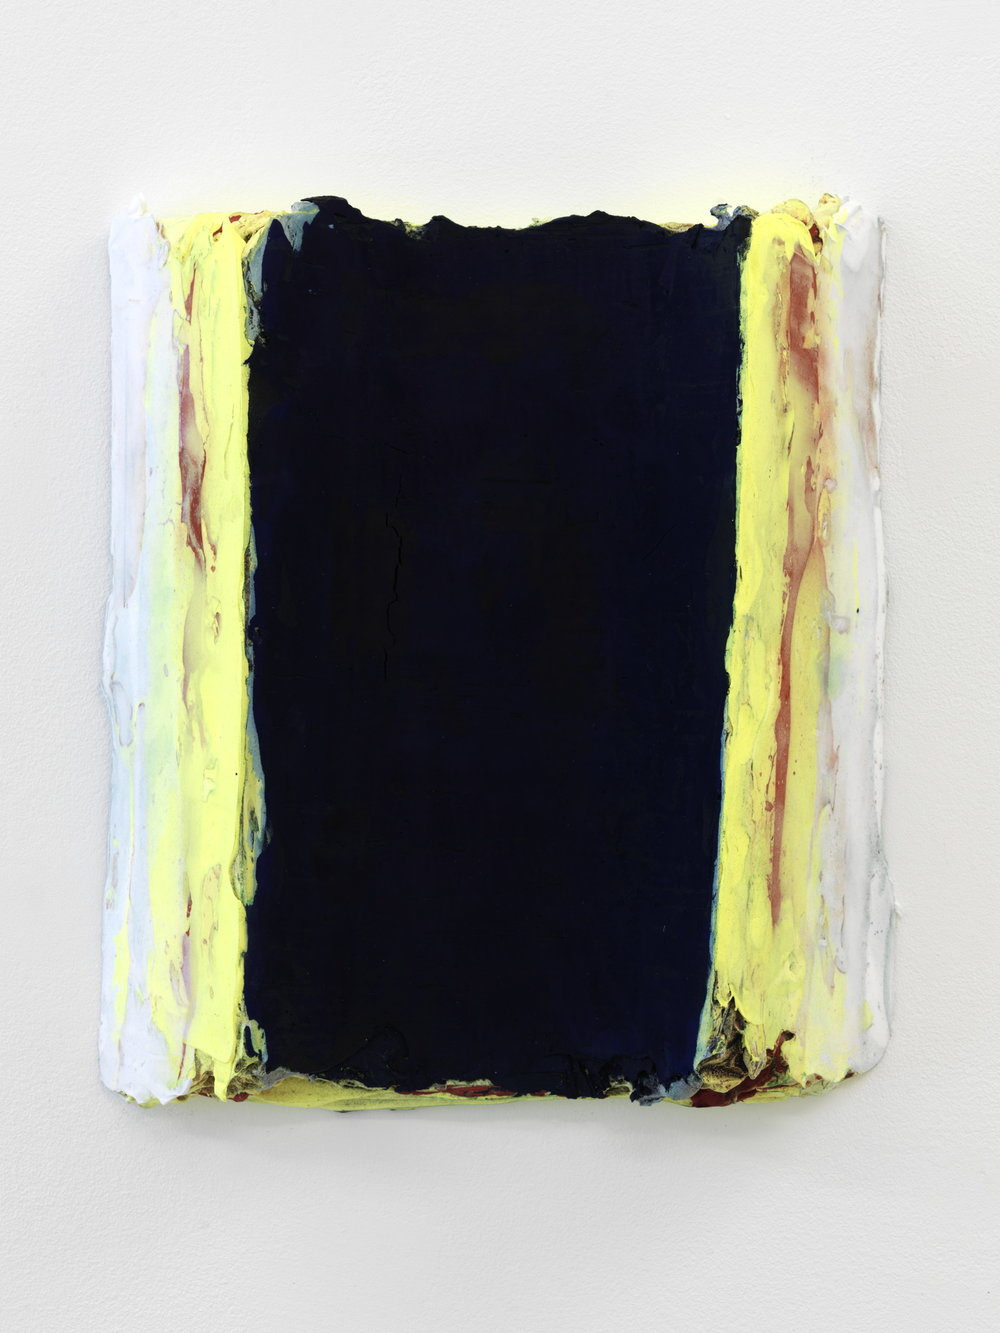 Nicolas Roggy,  Untitled,  2013, pigment and acrylic medium on PVC, 15 x 13 in.